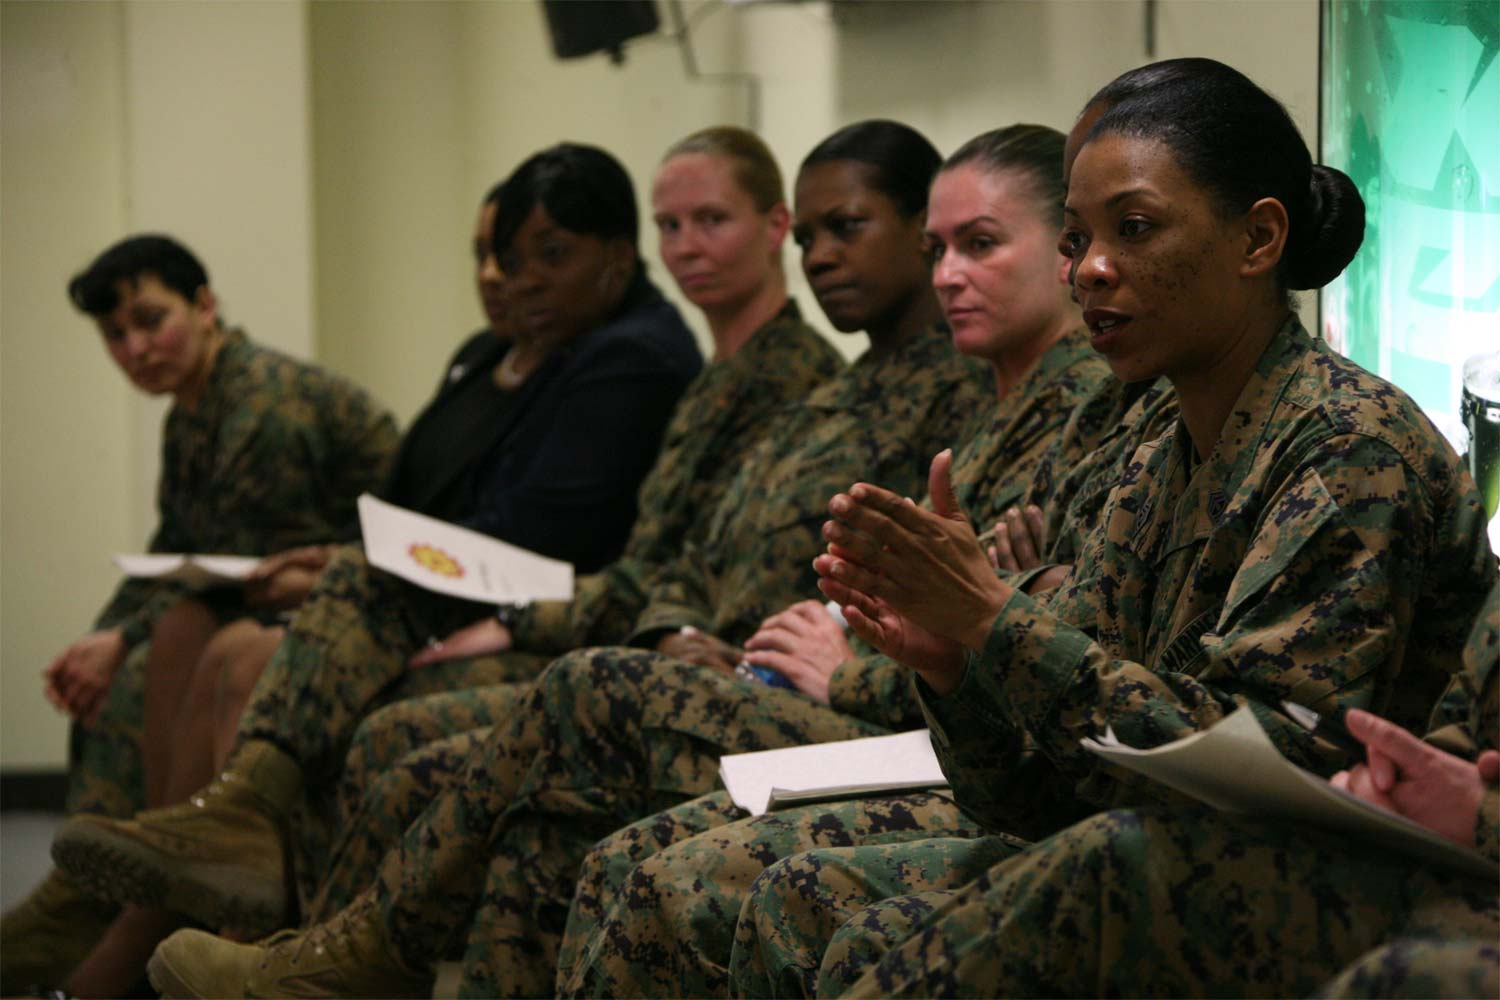 leadership diversity in the army officer Leaders must emphasize that our diversity is a natural element of our culture, and when acknowledged and respected, forms the underpinnings of an inclusive environment unique to the army.